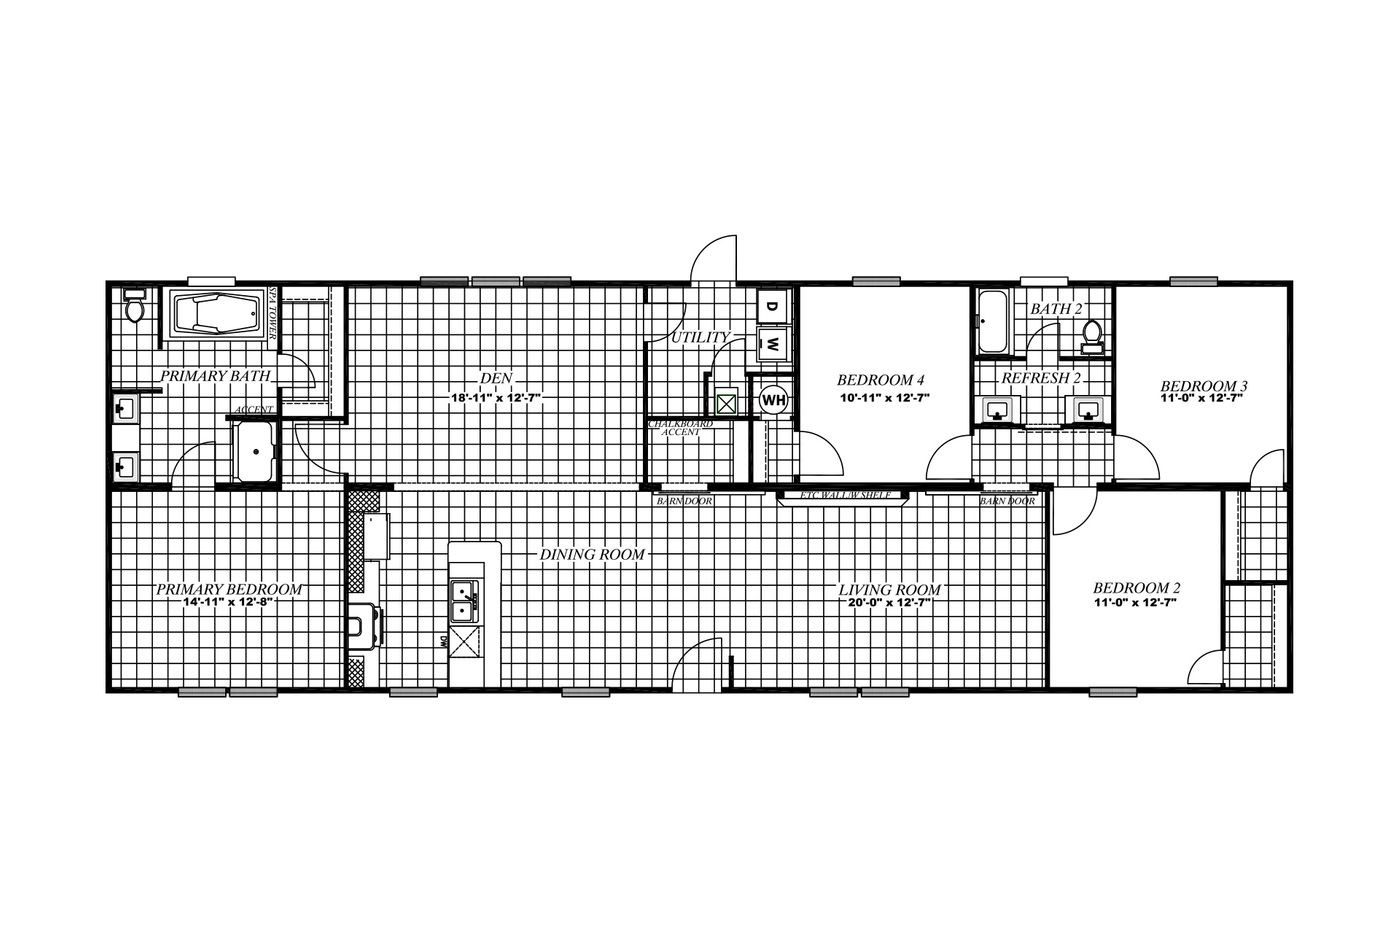 The THE BREEZE II Floor Plan. This Manufactured Mobile Home features 4 bedrooms and 2 baths.